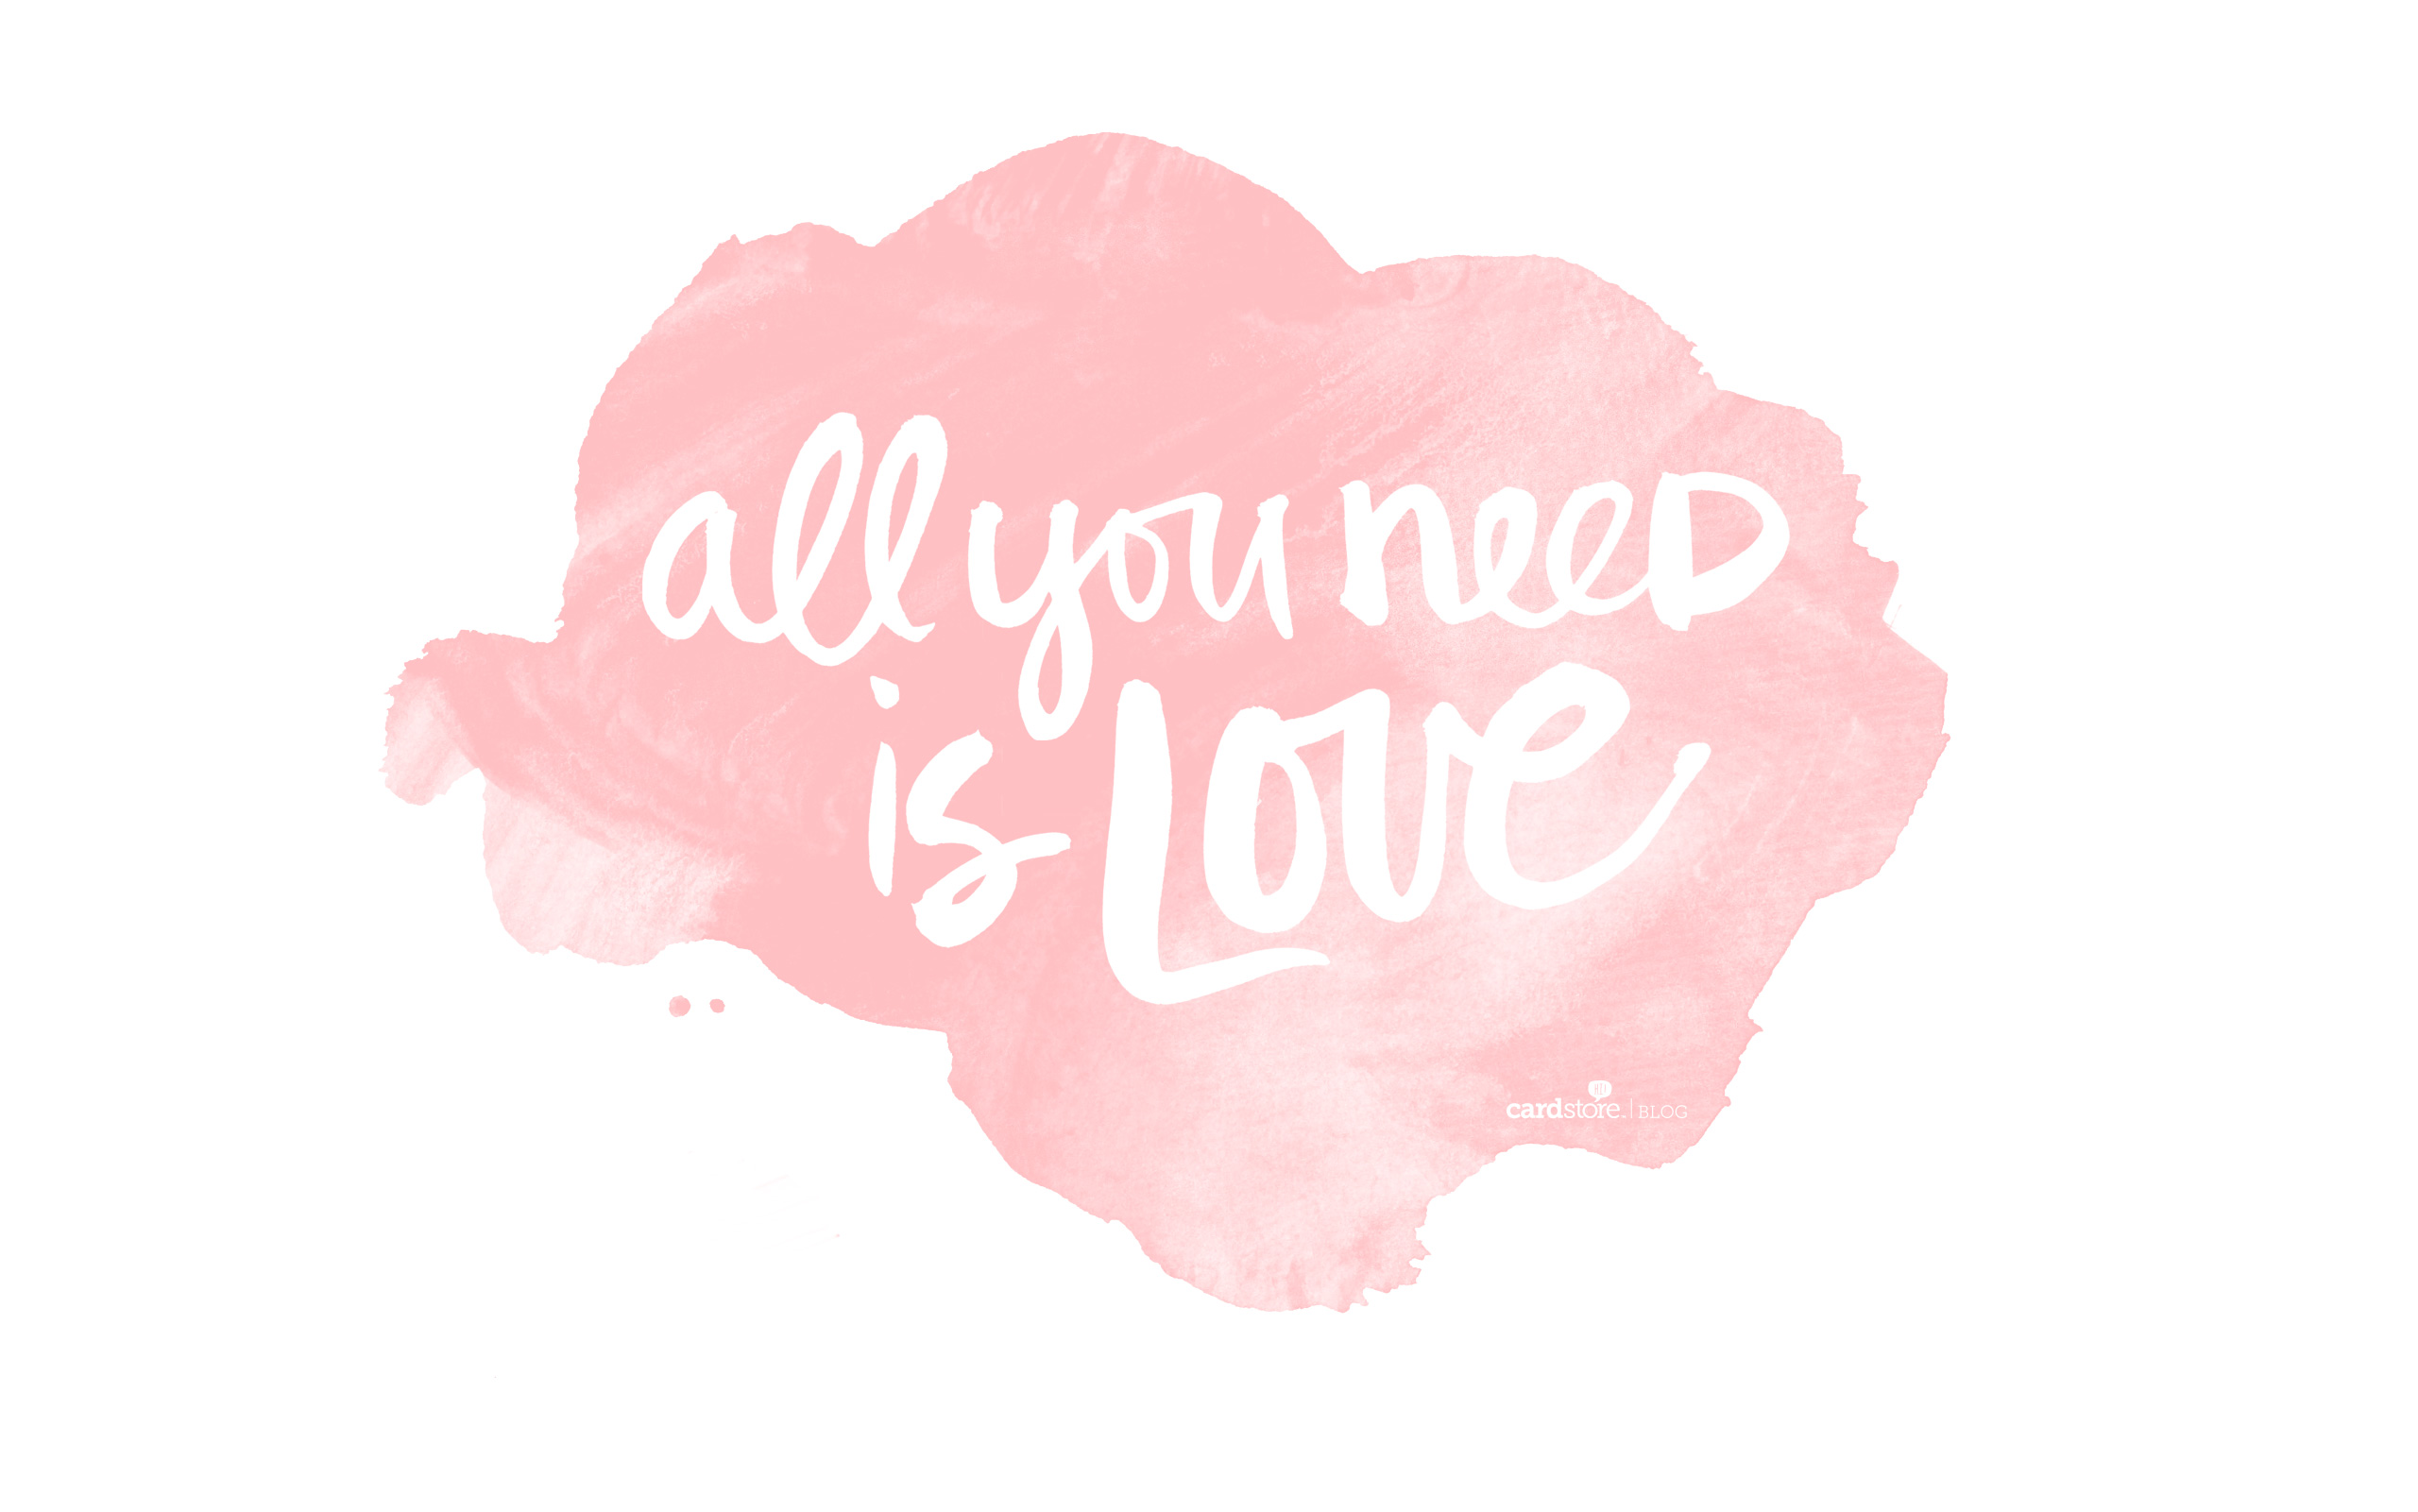 All Love Wallpaper Images : computerkleider Free Desktop Wallpaper im Februar Pinkepank